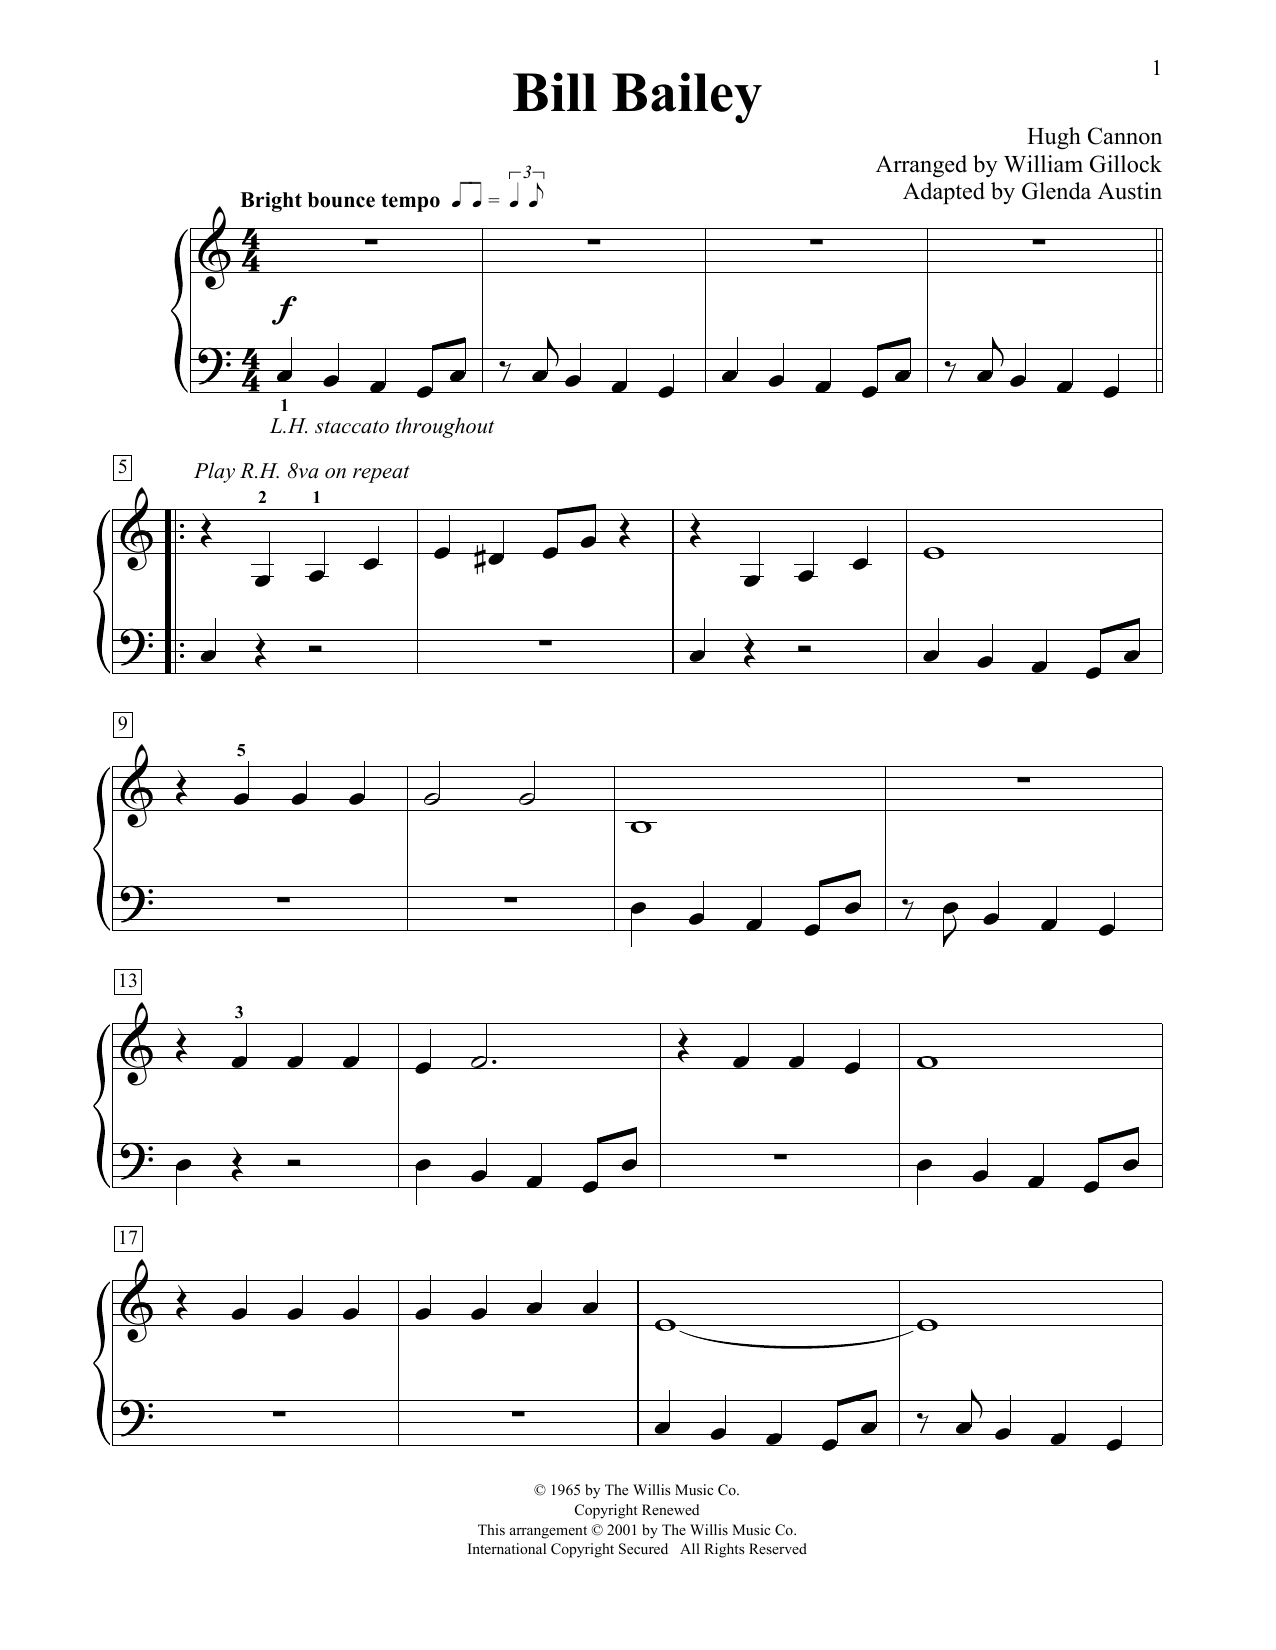 William Gillock Bill Bailey (Simplified) (adapted by Glenda Austin) sheet music notes printable PDF score